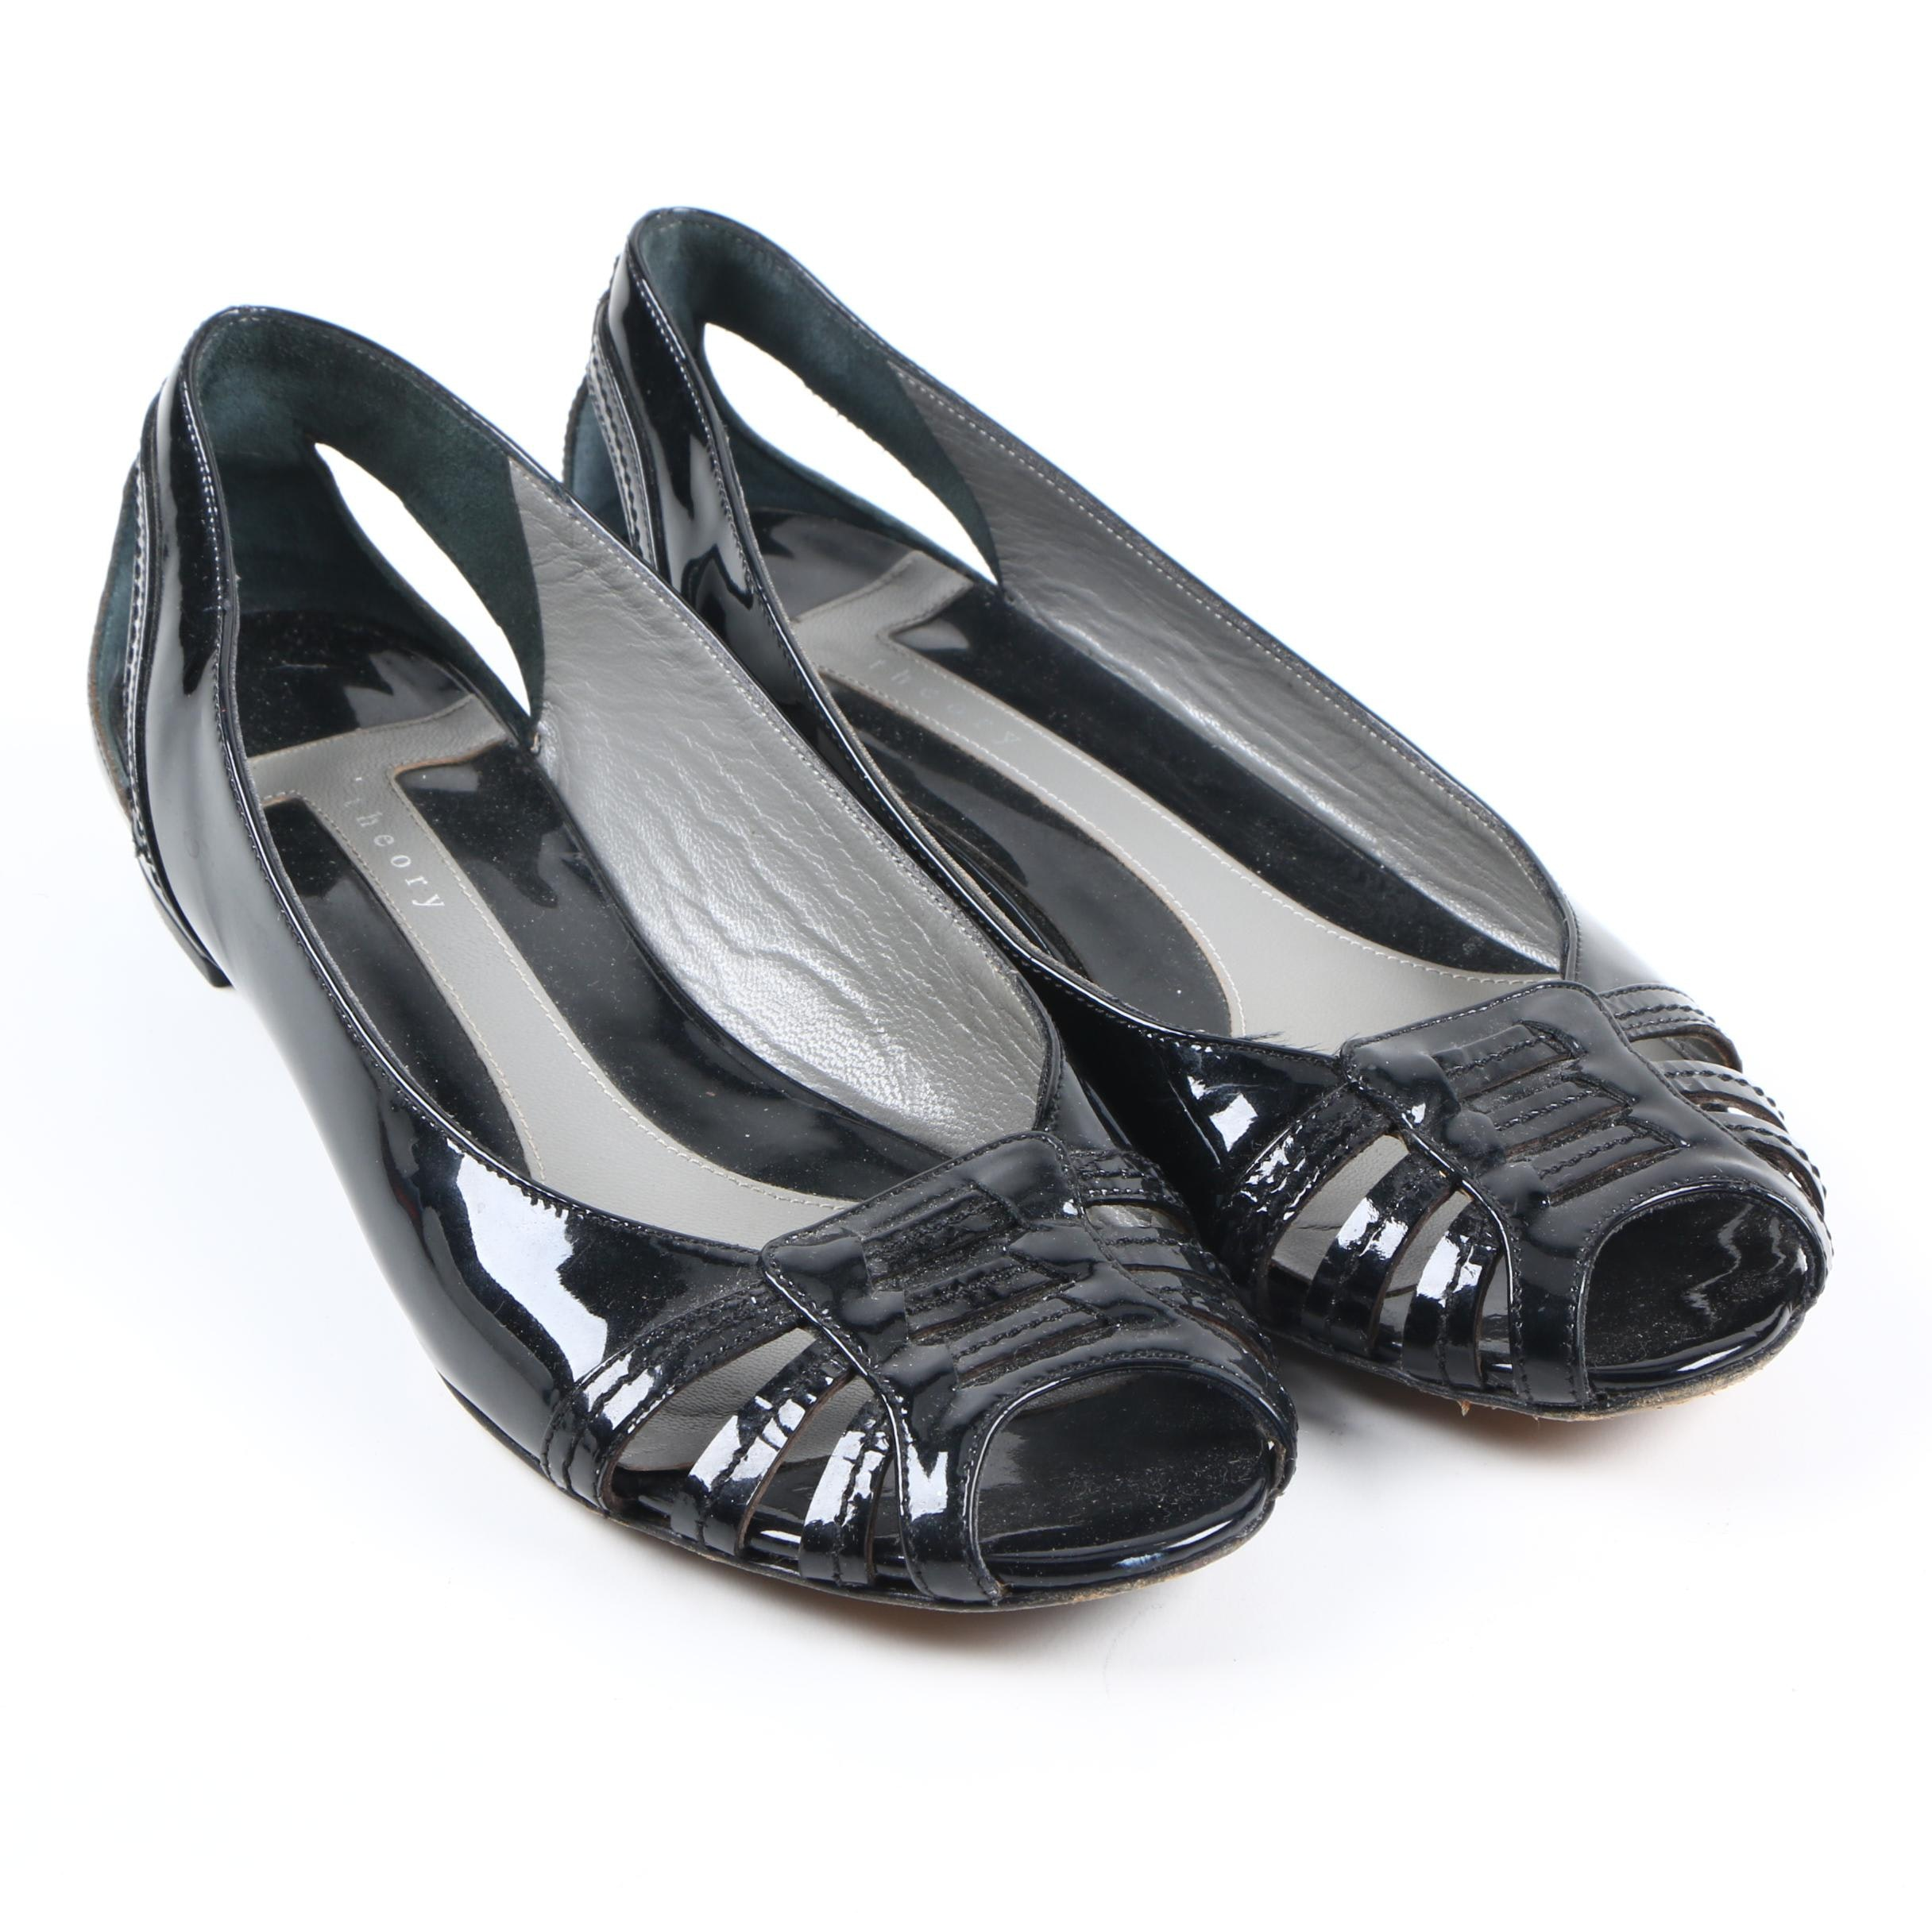 Theory Women's Patent Leather Peep Toe Pumps